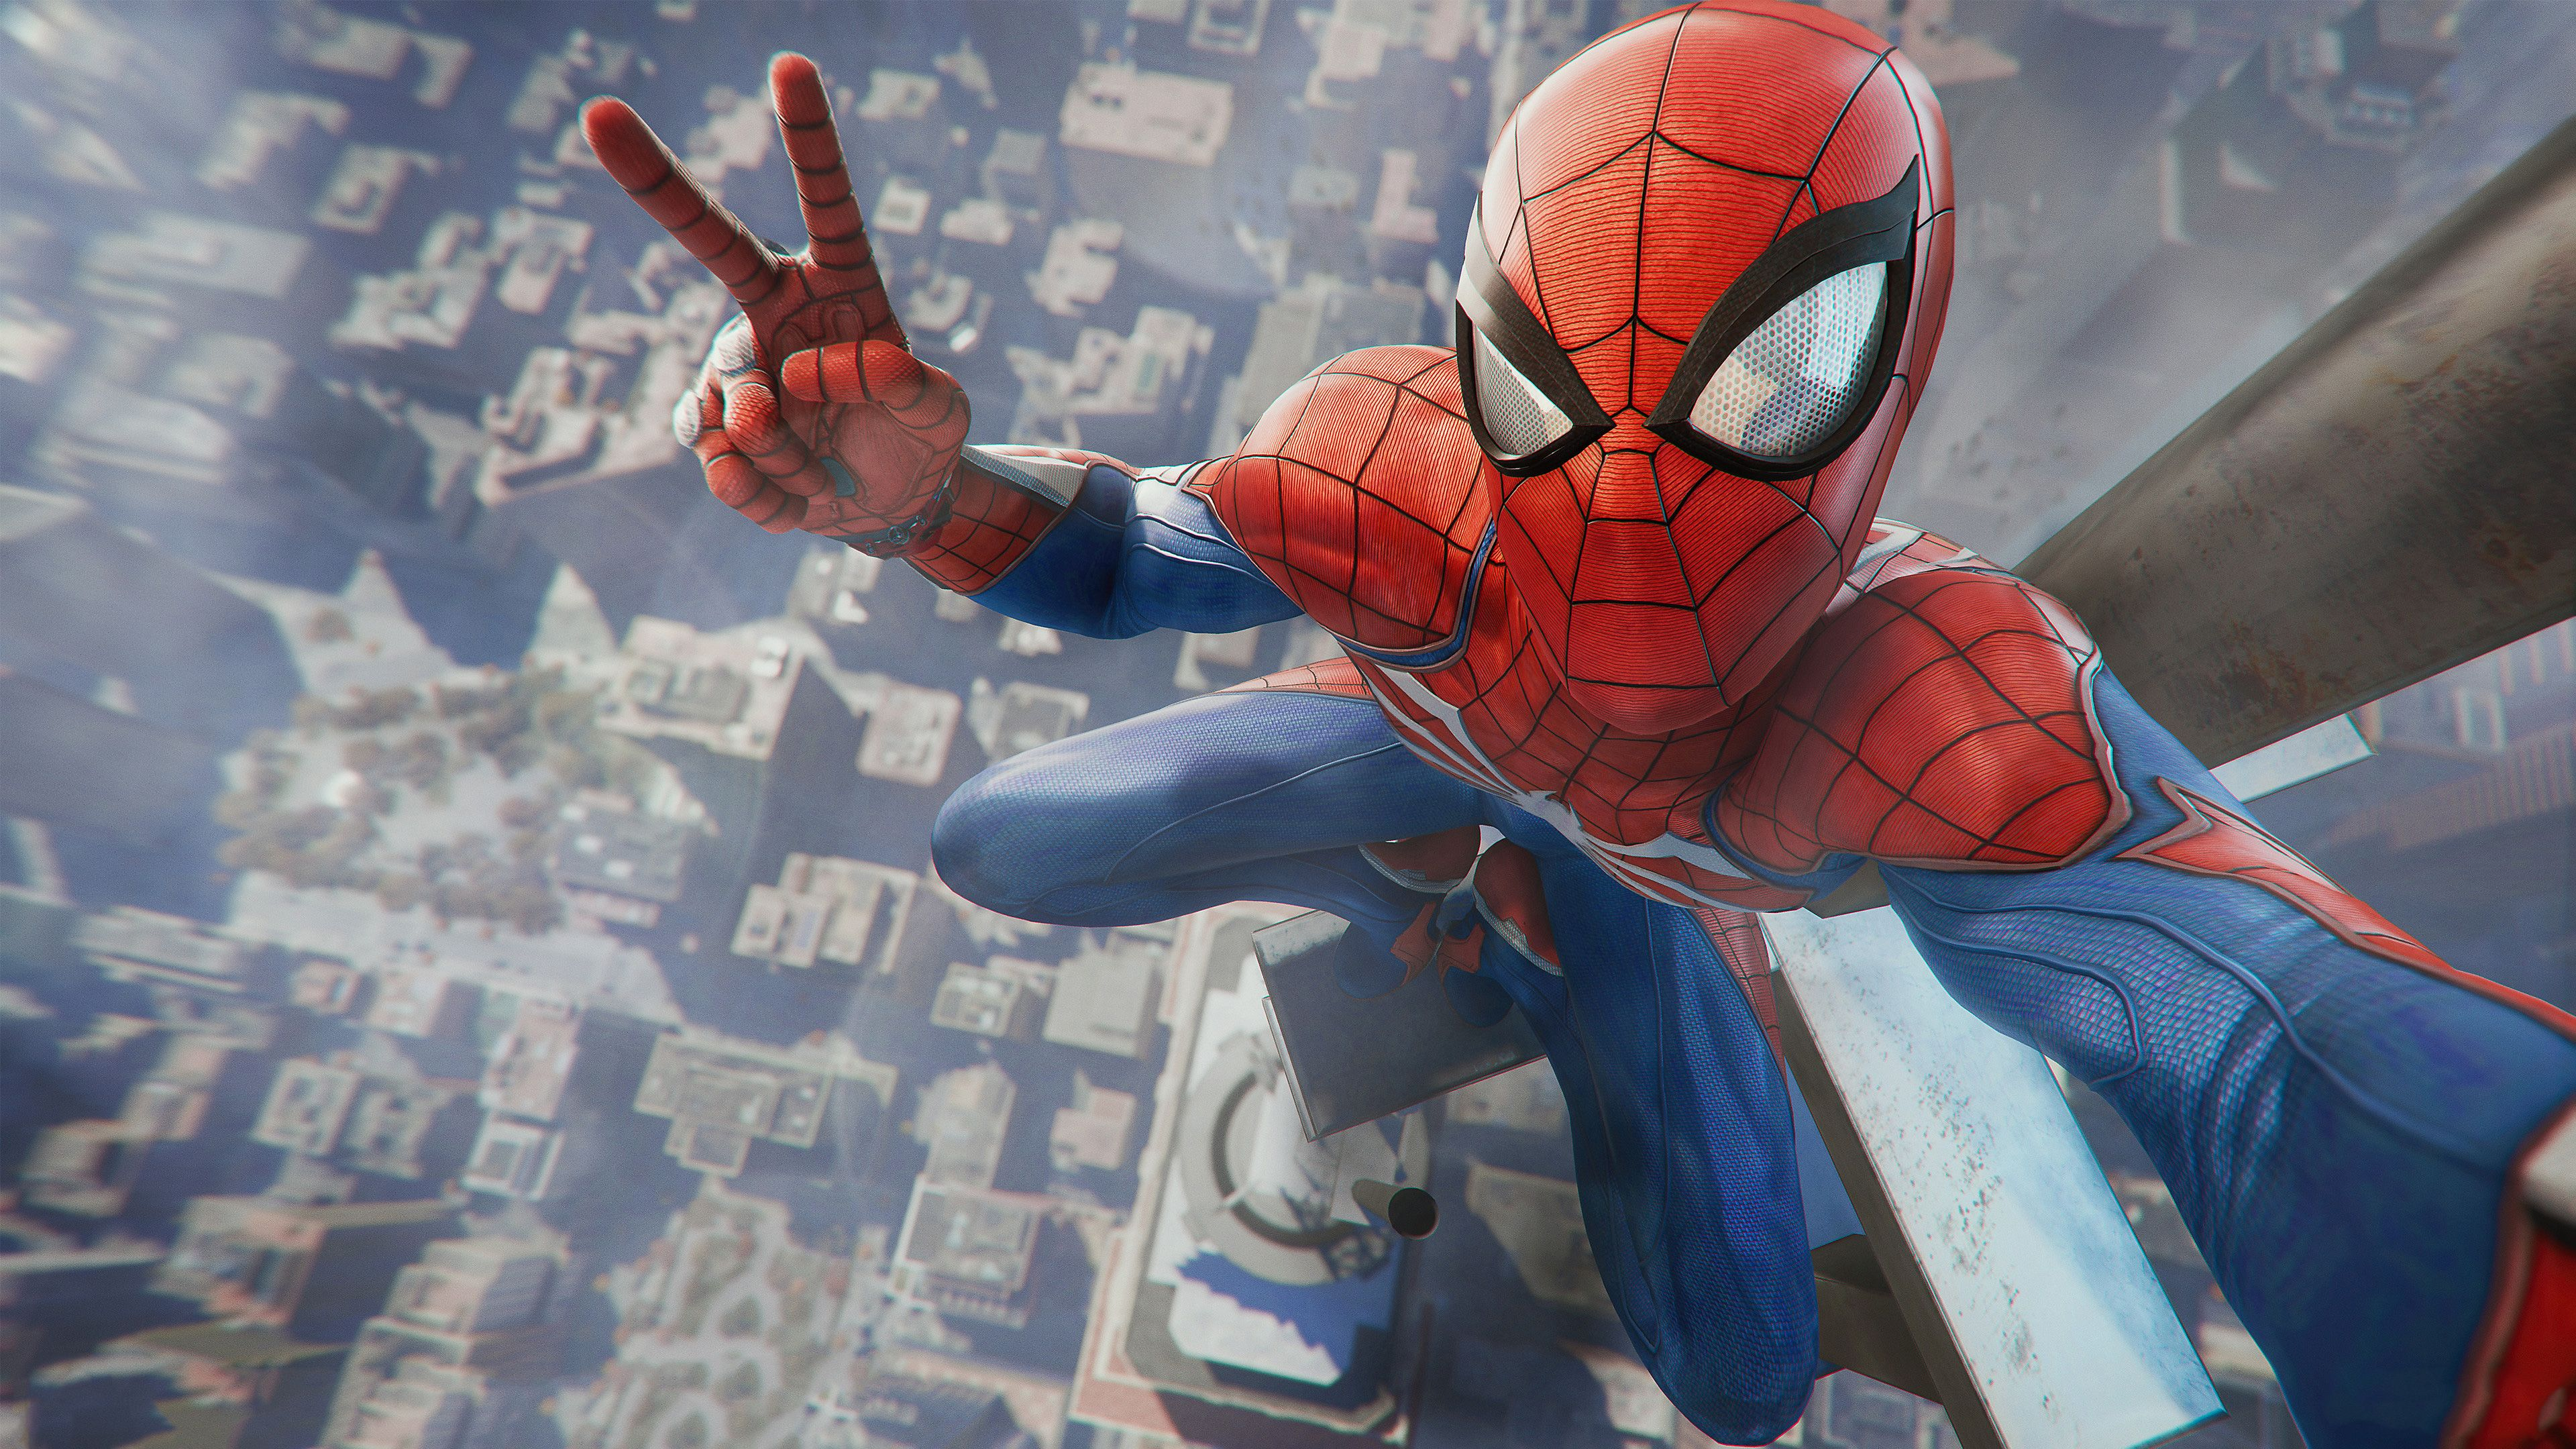 """4548x2844 Spider-Man: Homecoming 4k Ultra HD Wallpaper and Background Image ..."""">"""